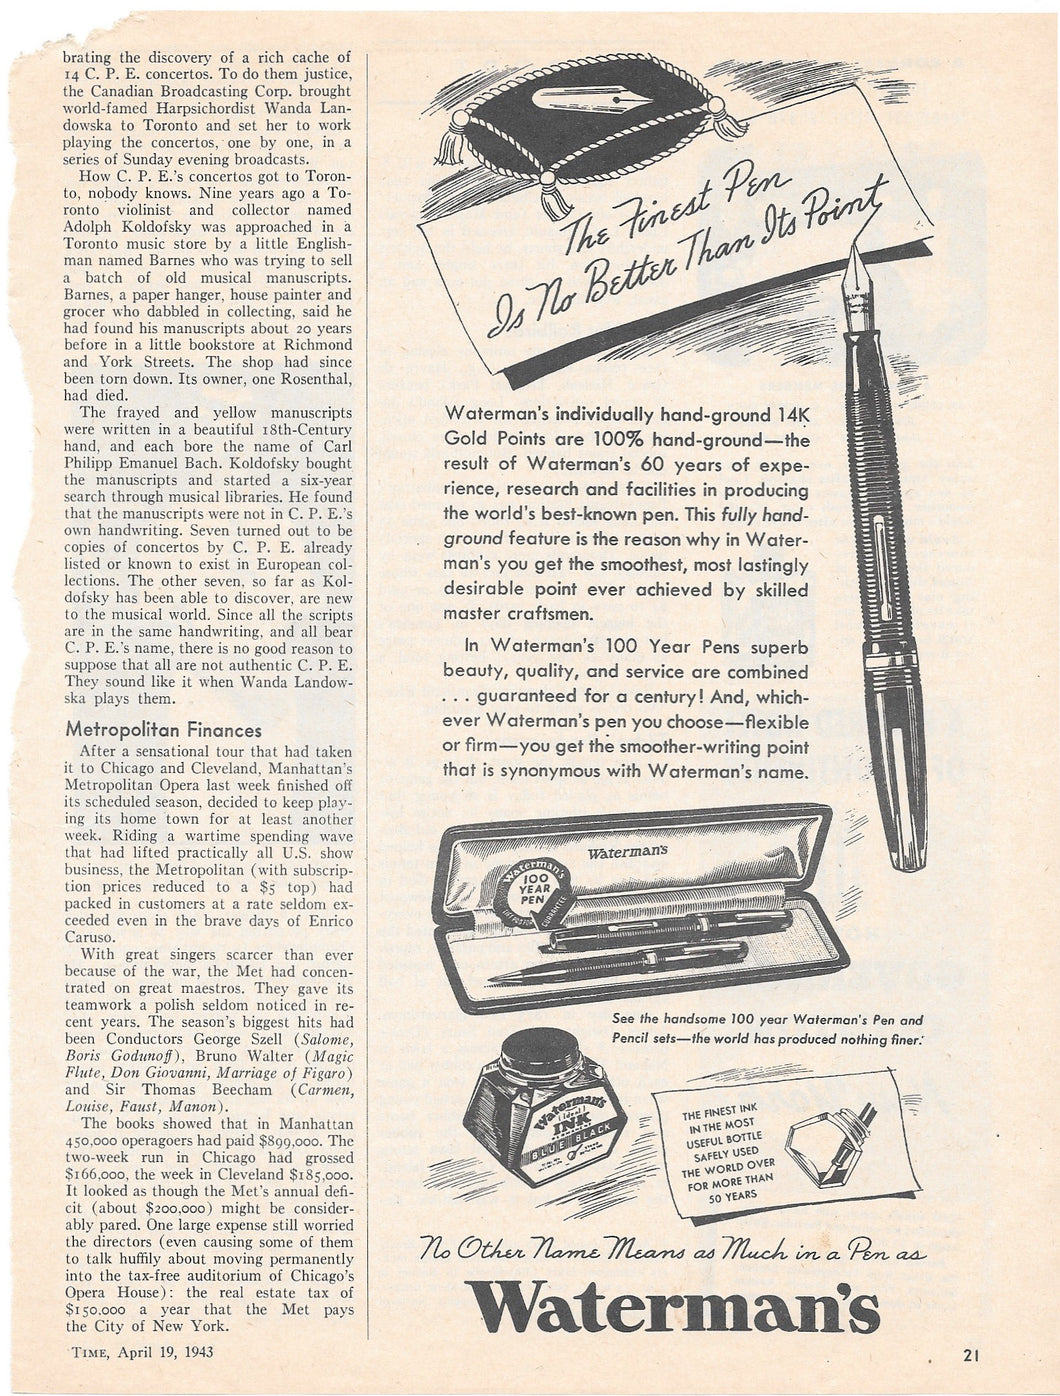 Waterman's 100 Year Pen, Black & White, Time Magazine 1943